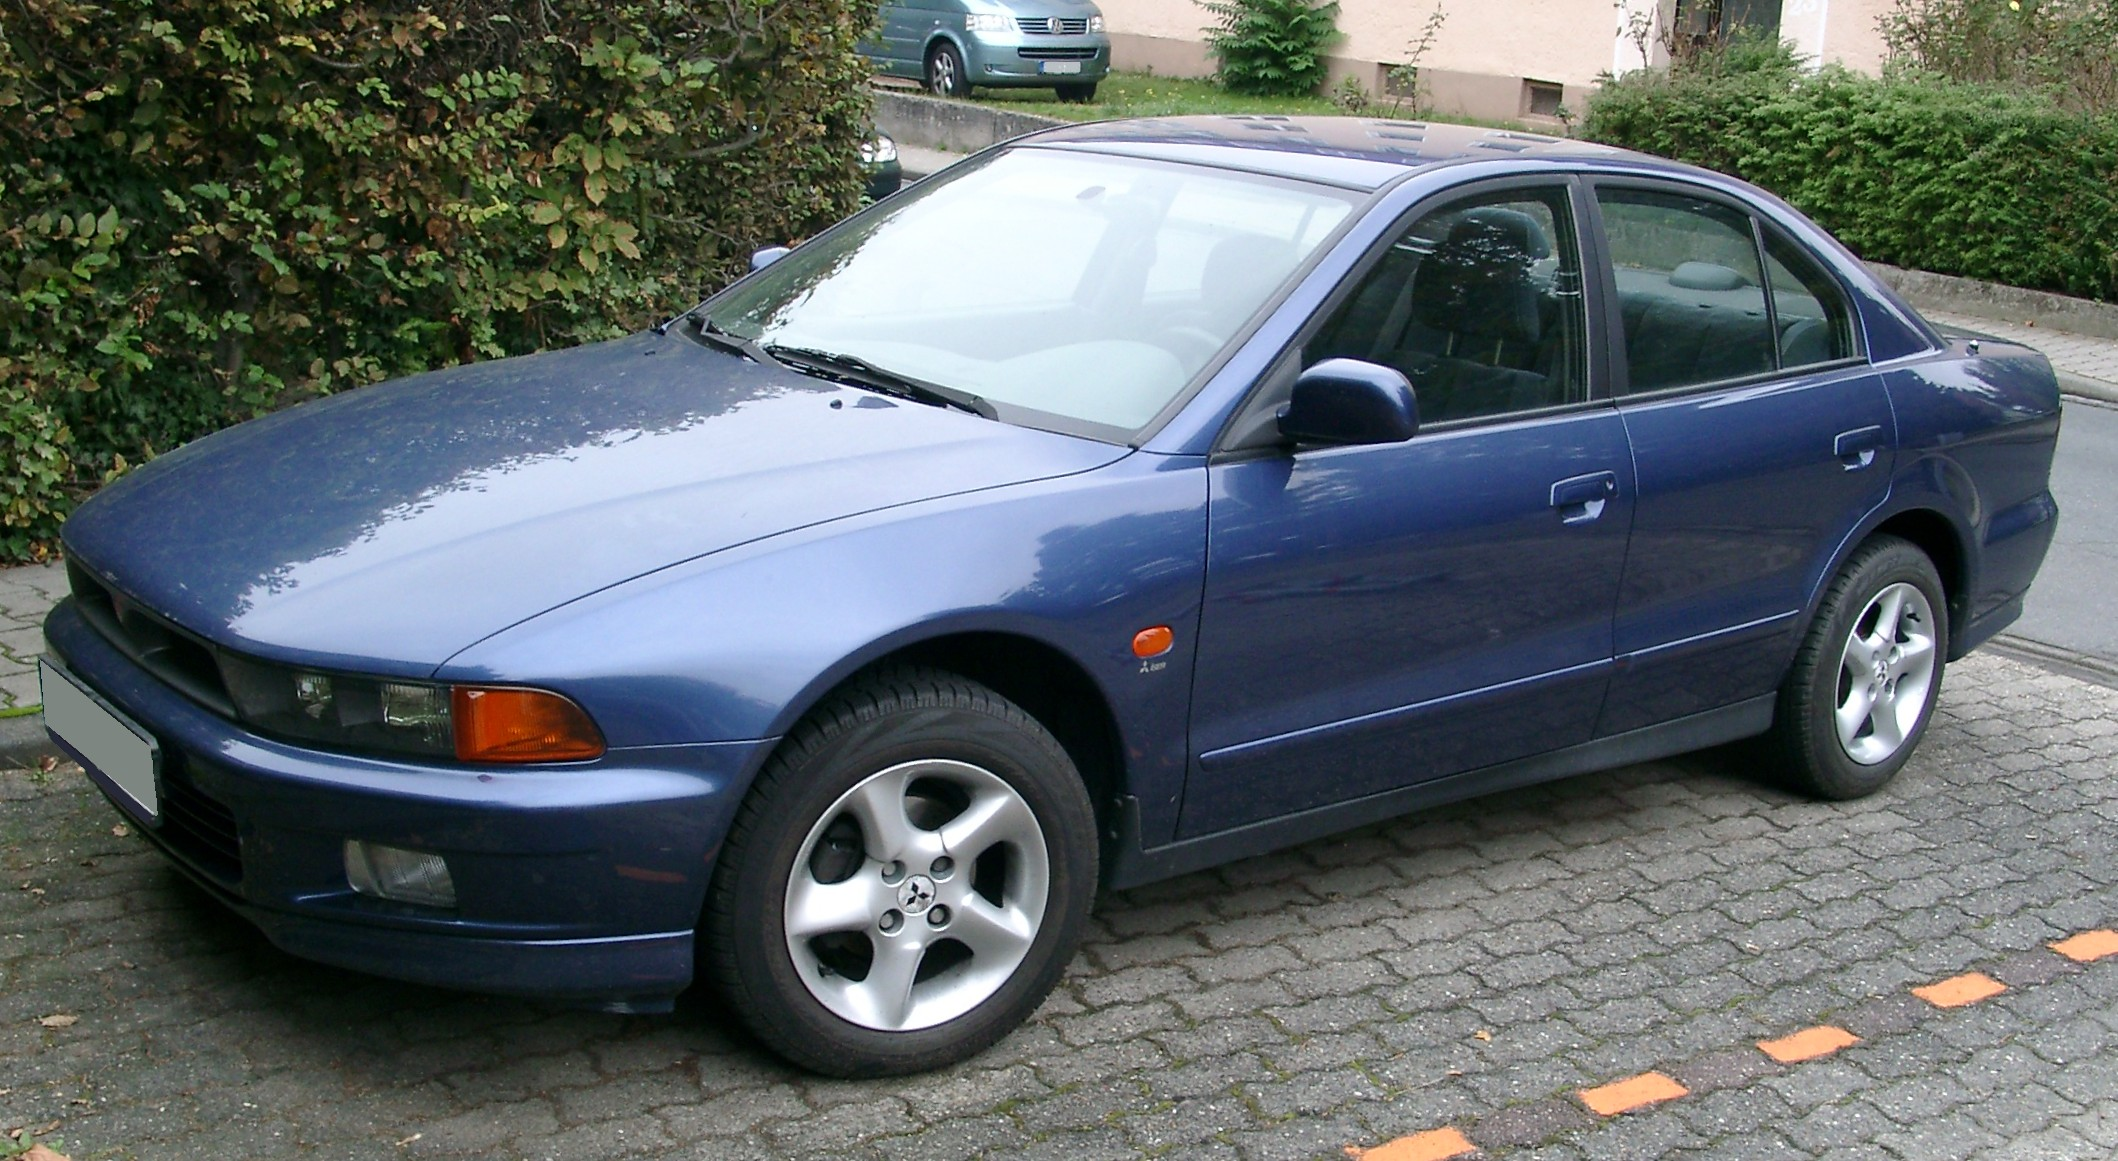 mitsubishi galant pictures information and specs auto database com mitsubishi galant pictures